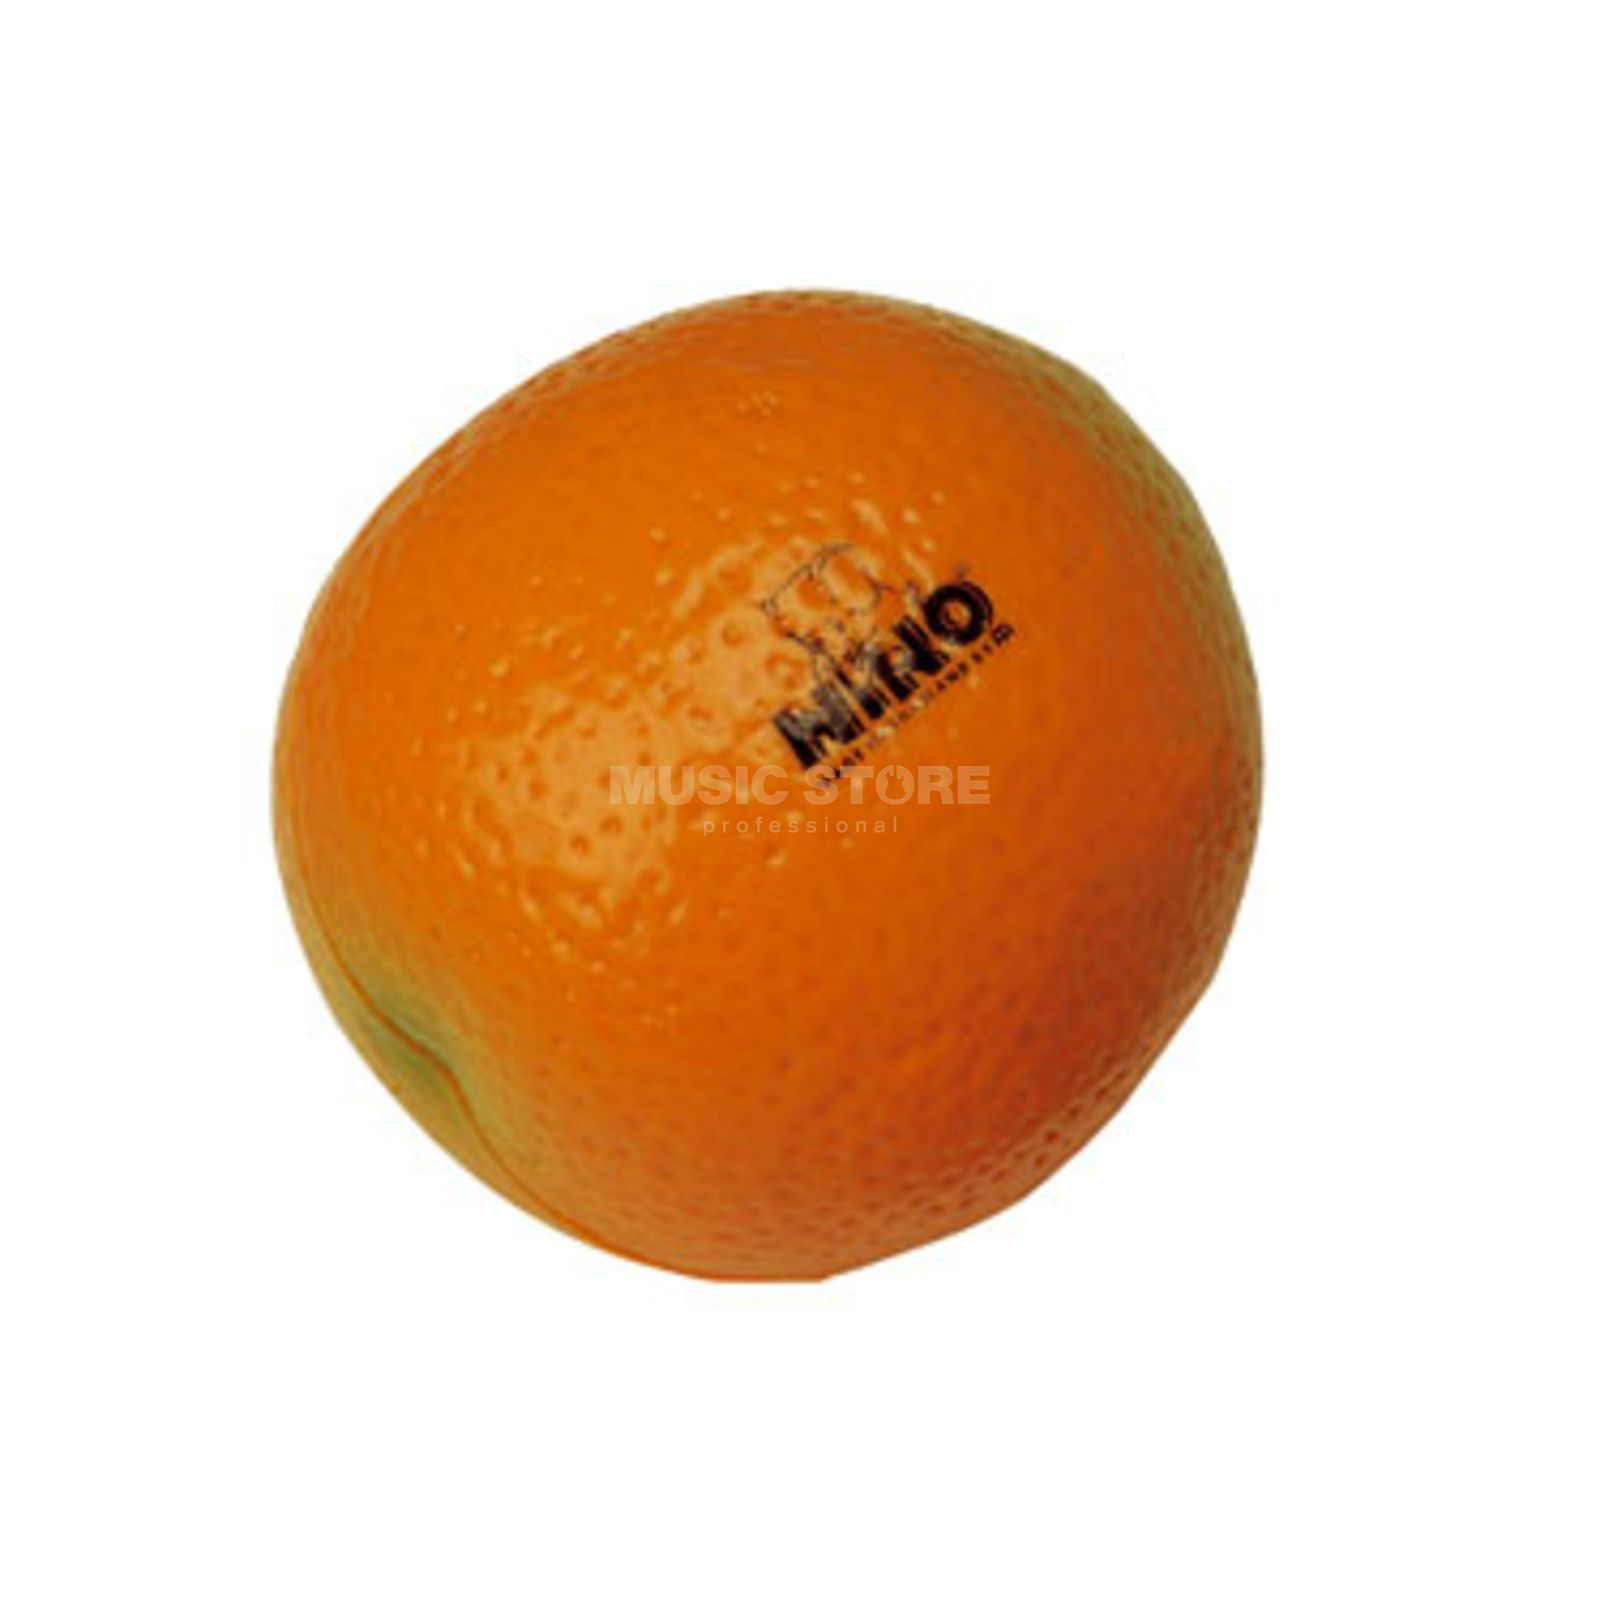 Meinl NINO598 Botany Fruit Shaker, Orange Produktbild